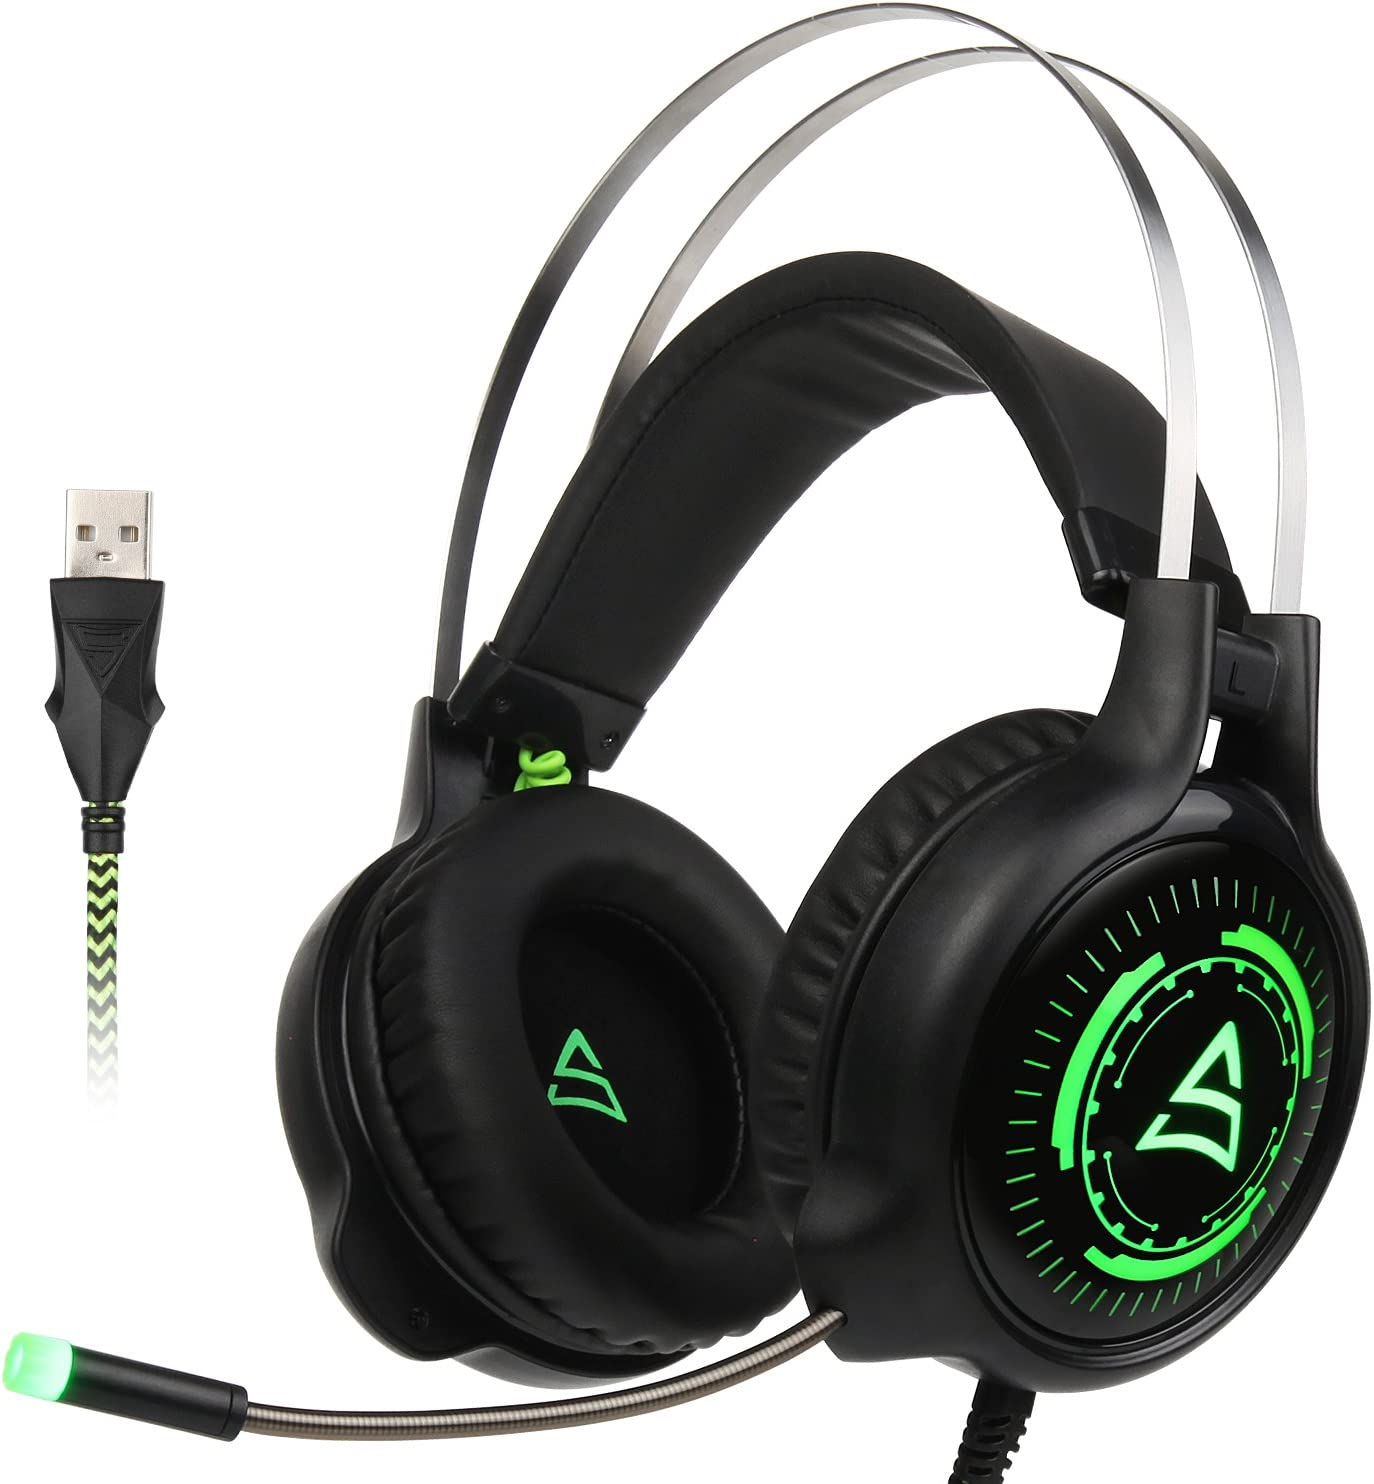 PS4 Gaming Headset 3.5mm wired Over-ear Noise Isolating Microphone Volume Control for Mac PC// Laptop PS4//Xbox one Black SUPSOO G813 Xbox One